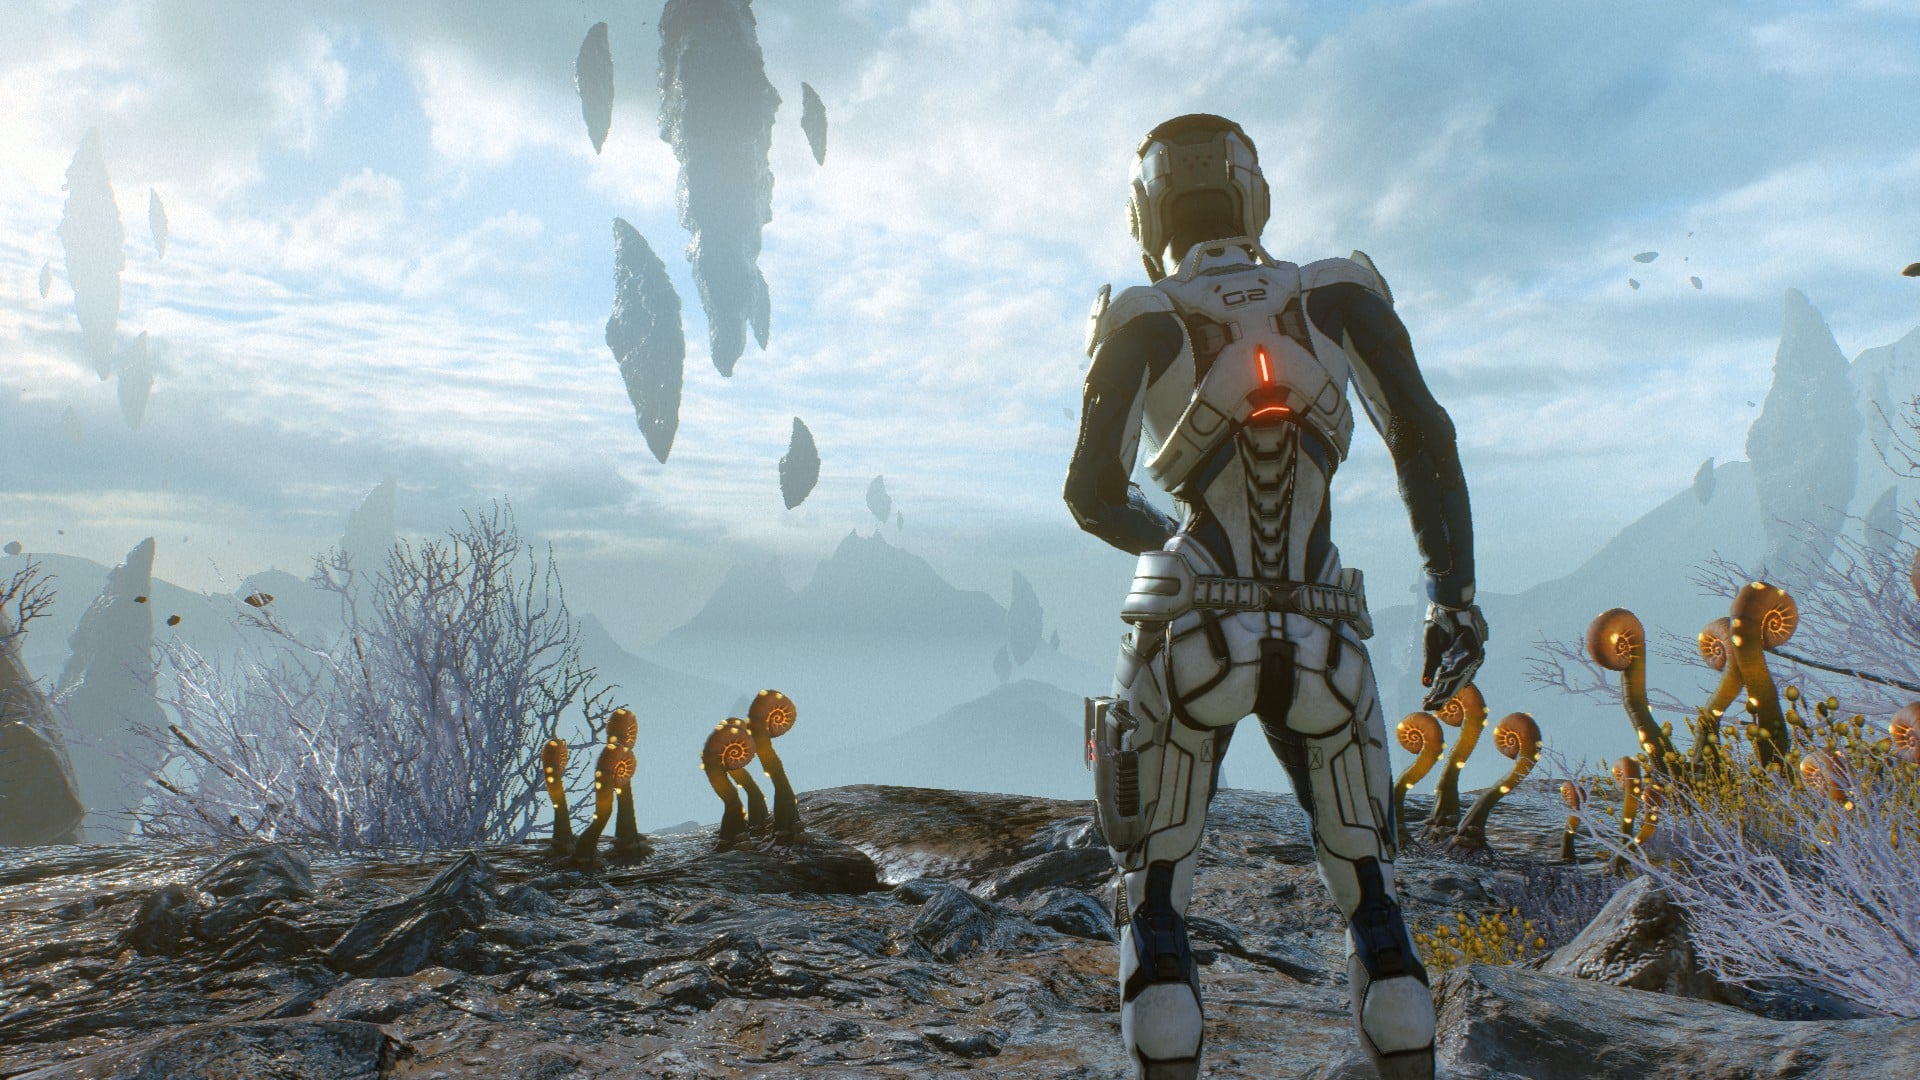 how to fix Mass Effect: Andromeda BioWare with streamlined features, faster opening